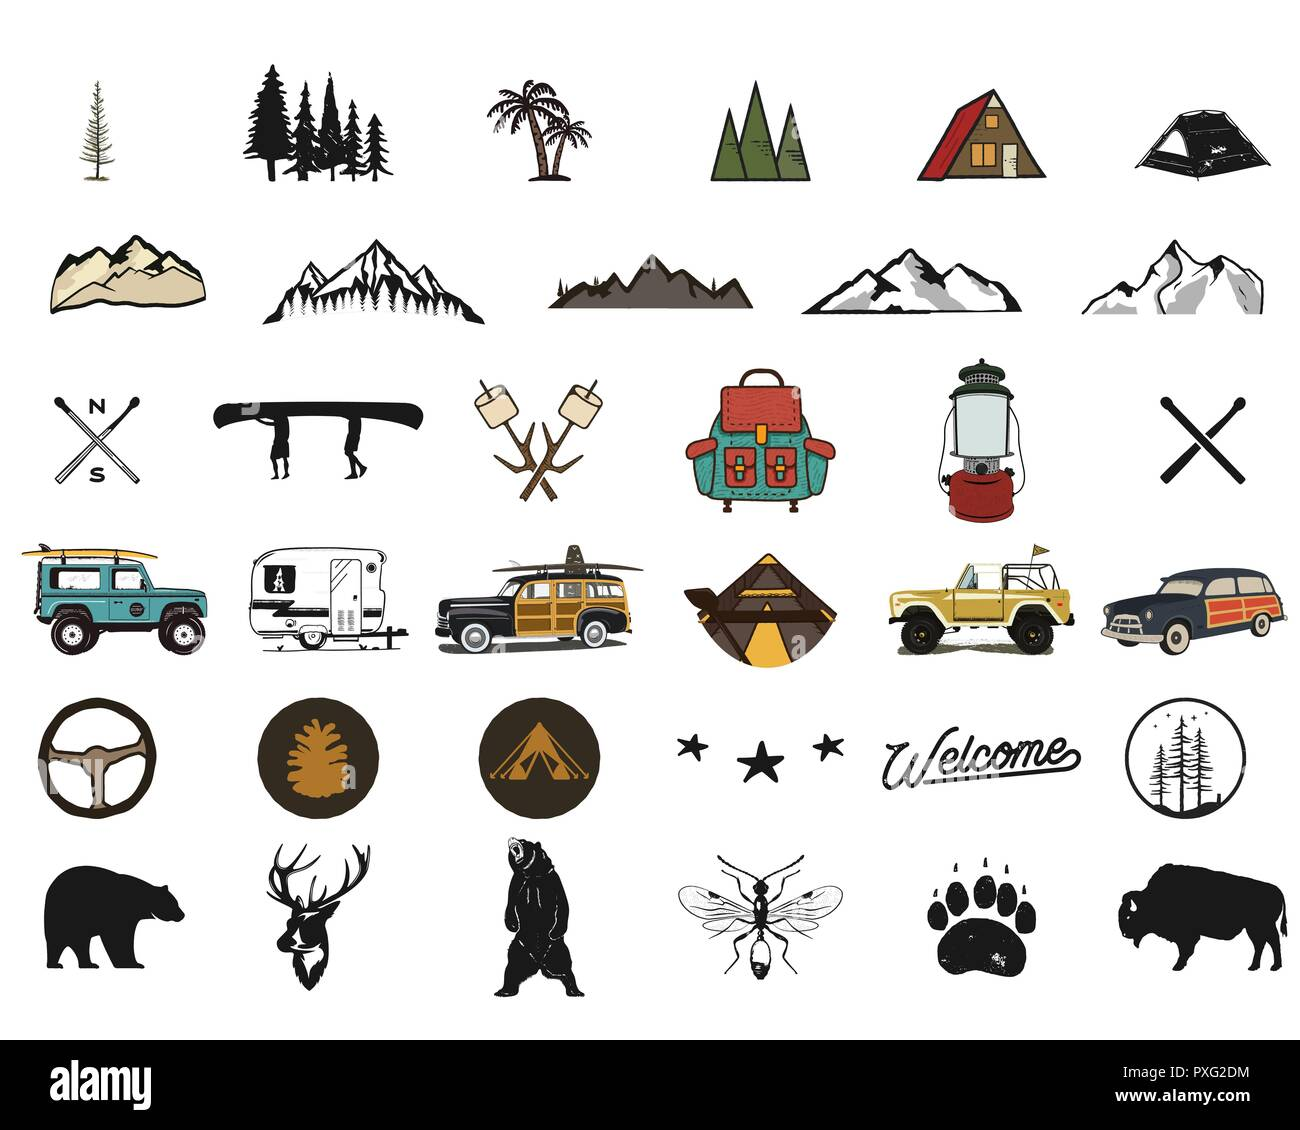 Vintage hand drawn adventure symbols, hiking, camping shapes of backpack, wild animals, canoe, surf car, backpack. Retro monochrome design. For t shirts, prints. Stock silhouette icons isolated - Stock Vector